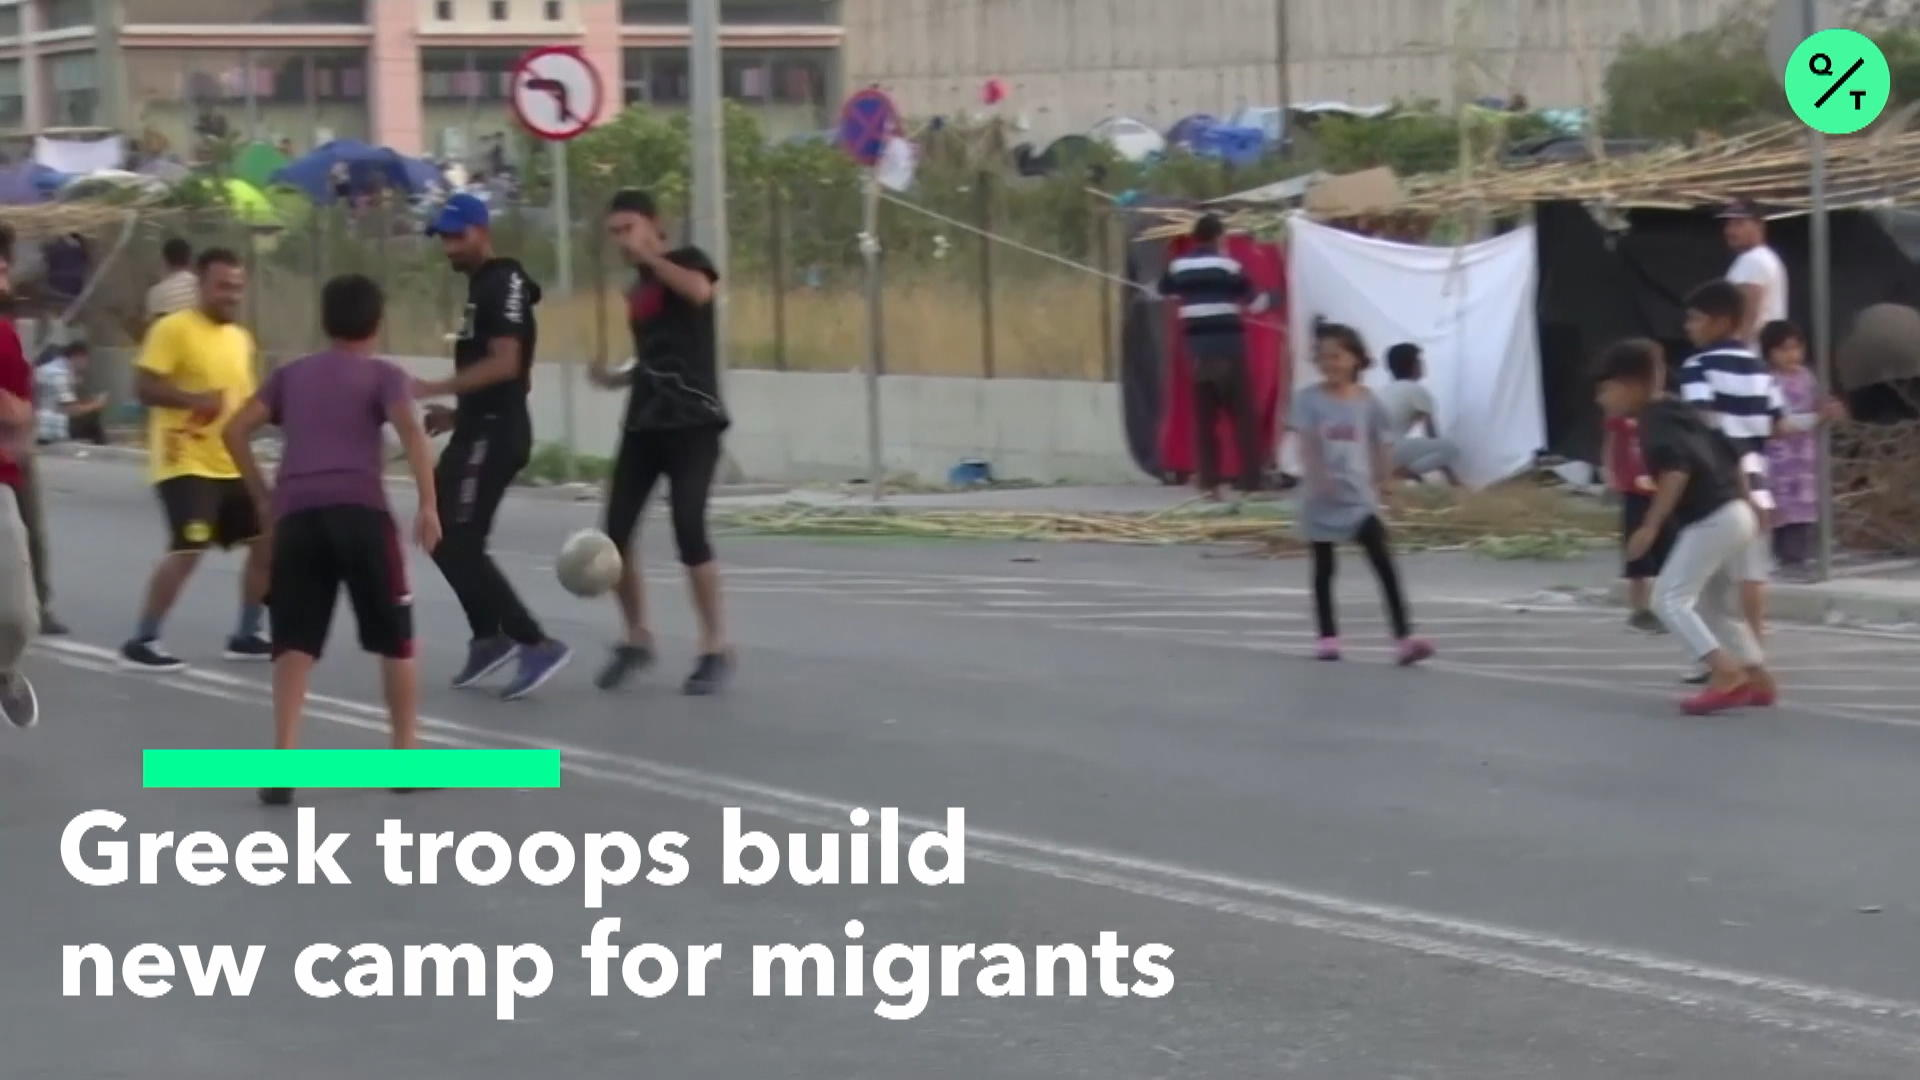 Greek Troops Build new Camp for Migrants